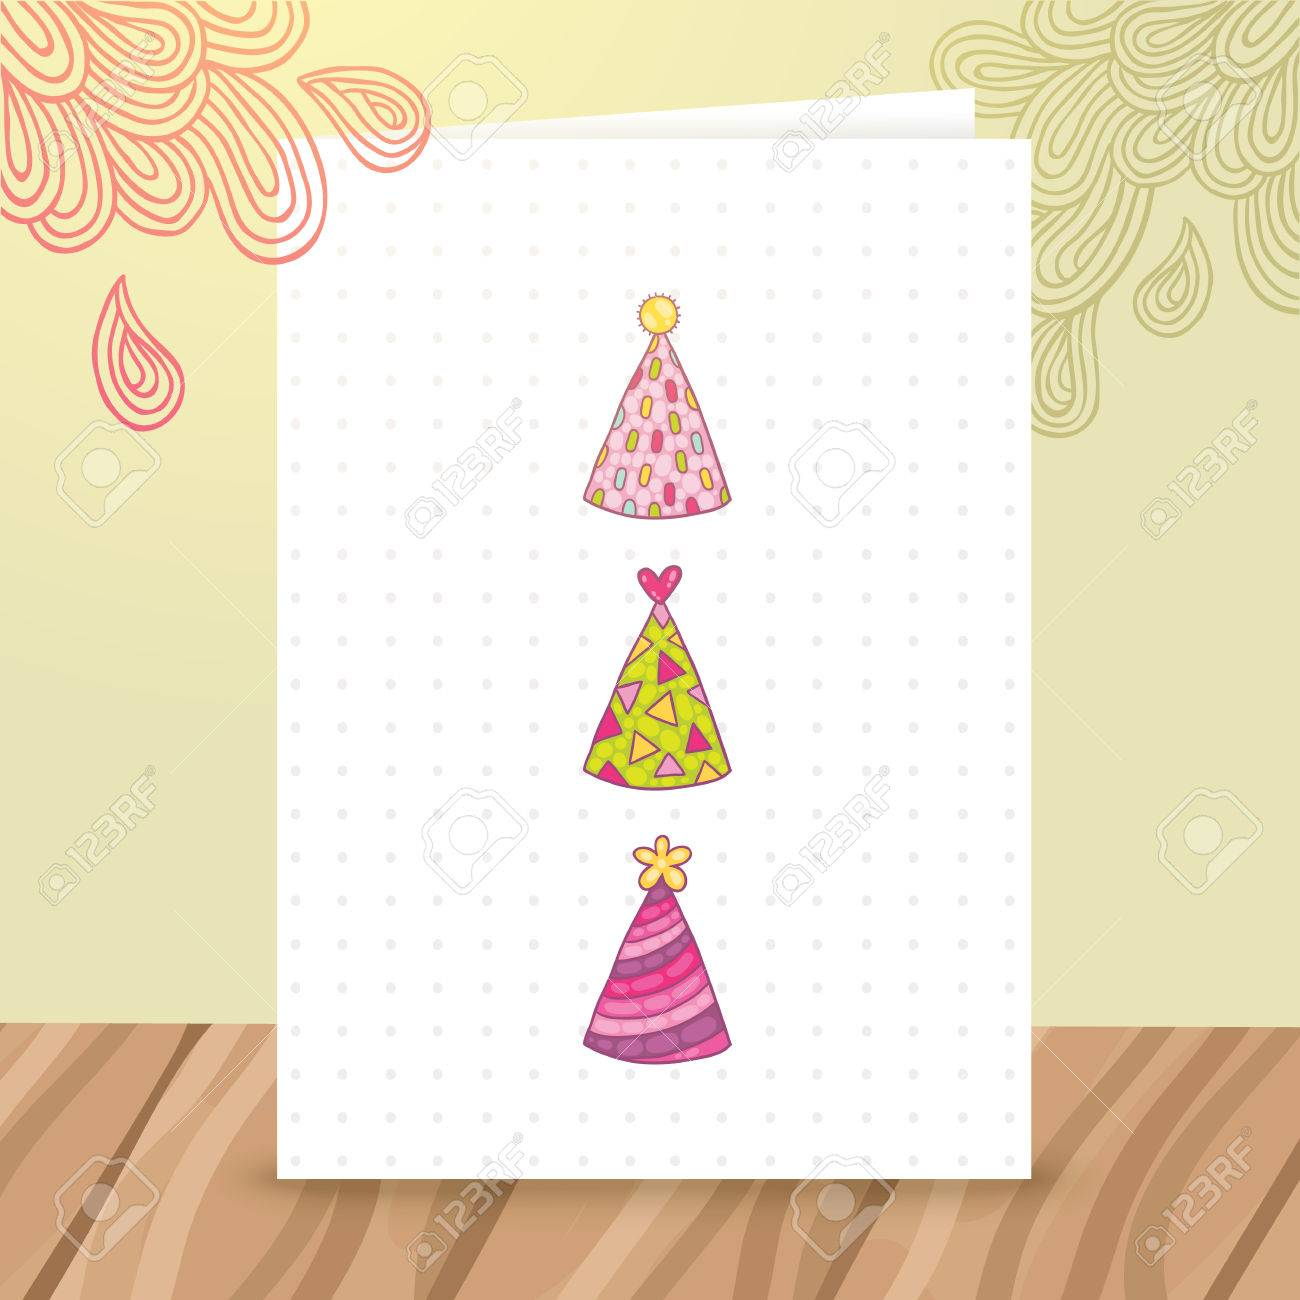 cute cartoon happy birthday postcard template with funny hats